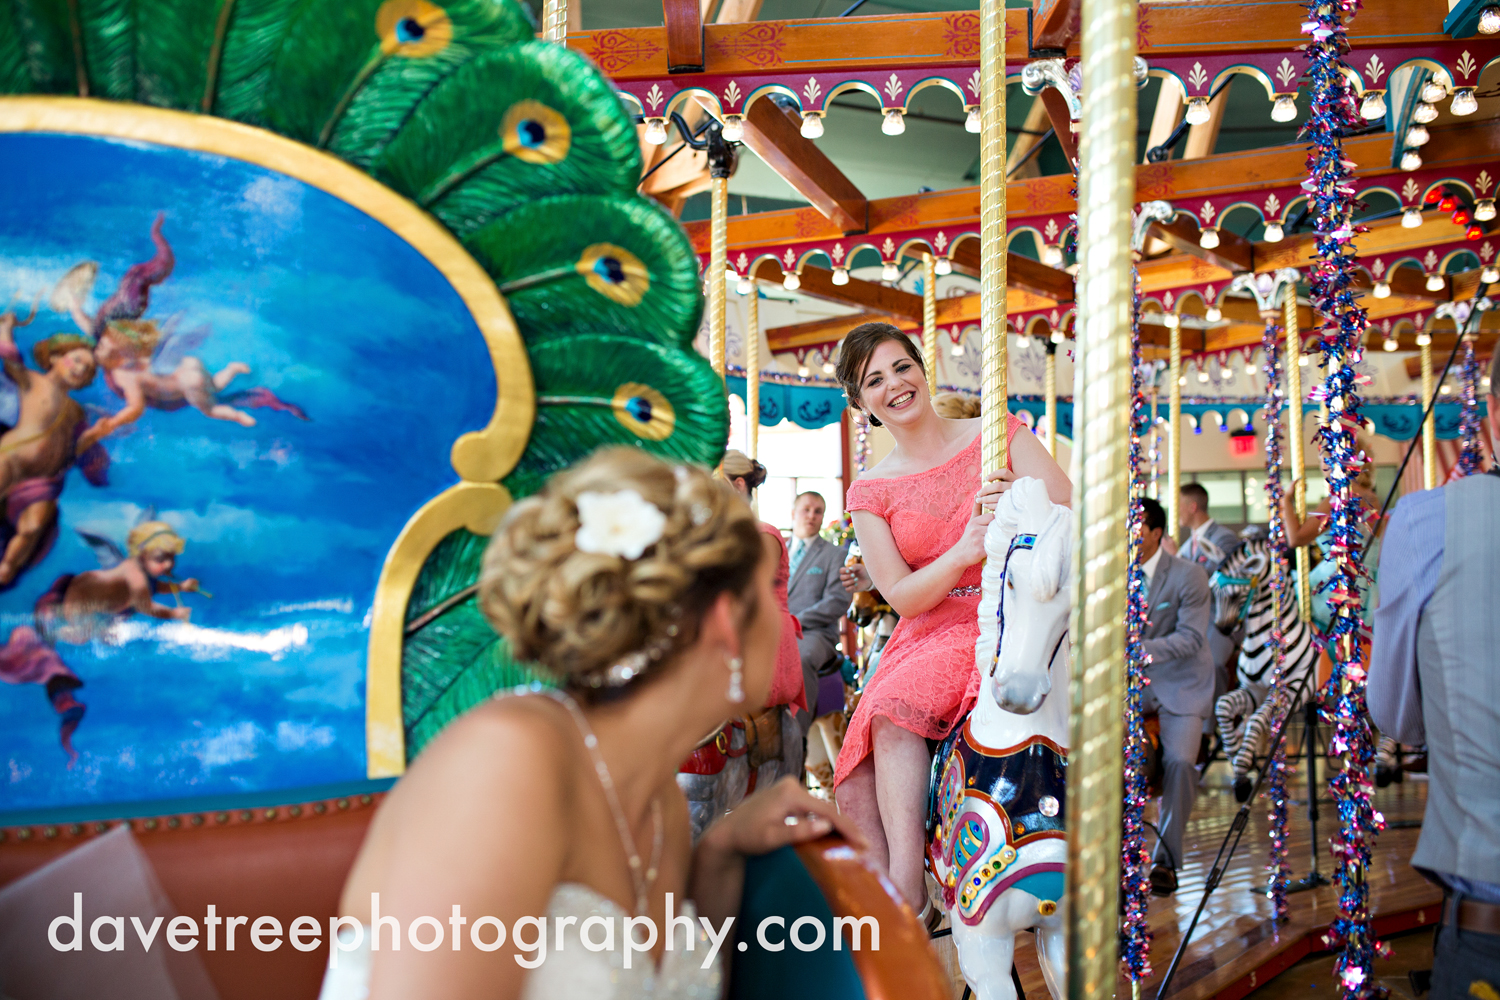 veranda_wedding_photographer_st_joseph_wedding_162.jpg